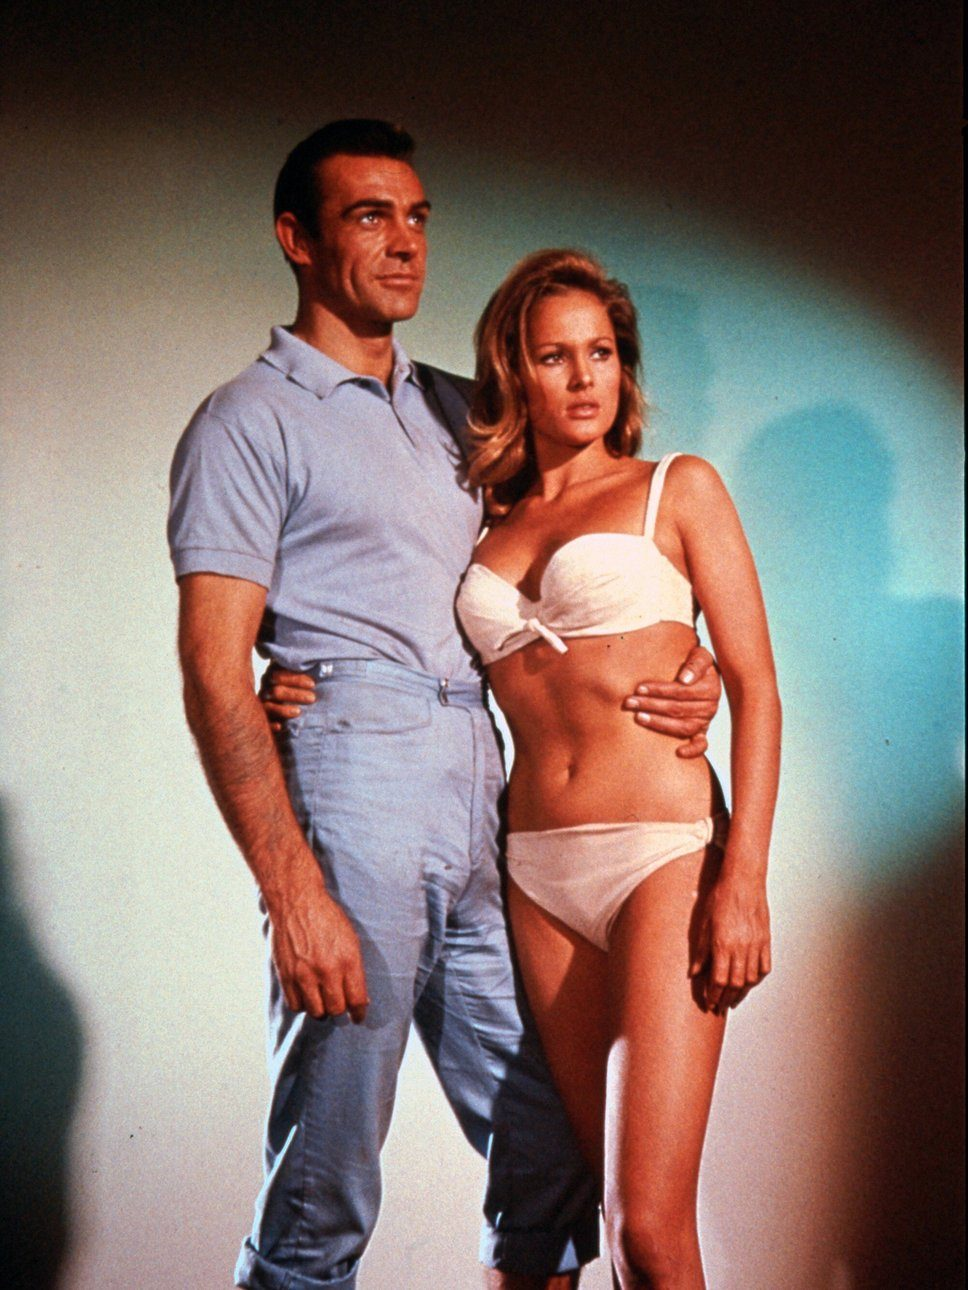 Actor Sean Connery as James Bond posing with actress Ursula Andress as Honey Ryder in the first James Bond film, Dr. No